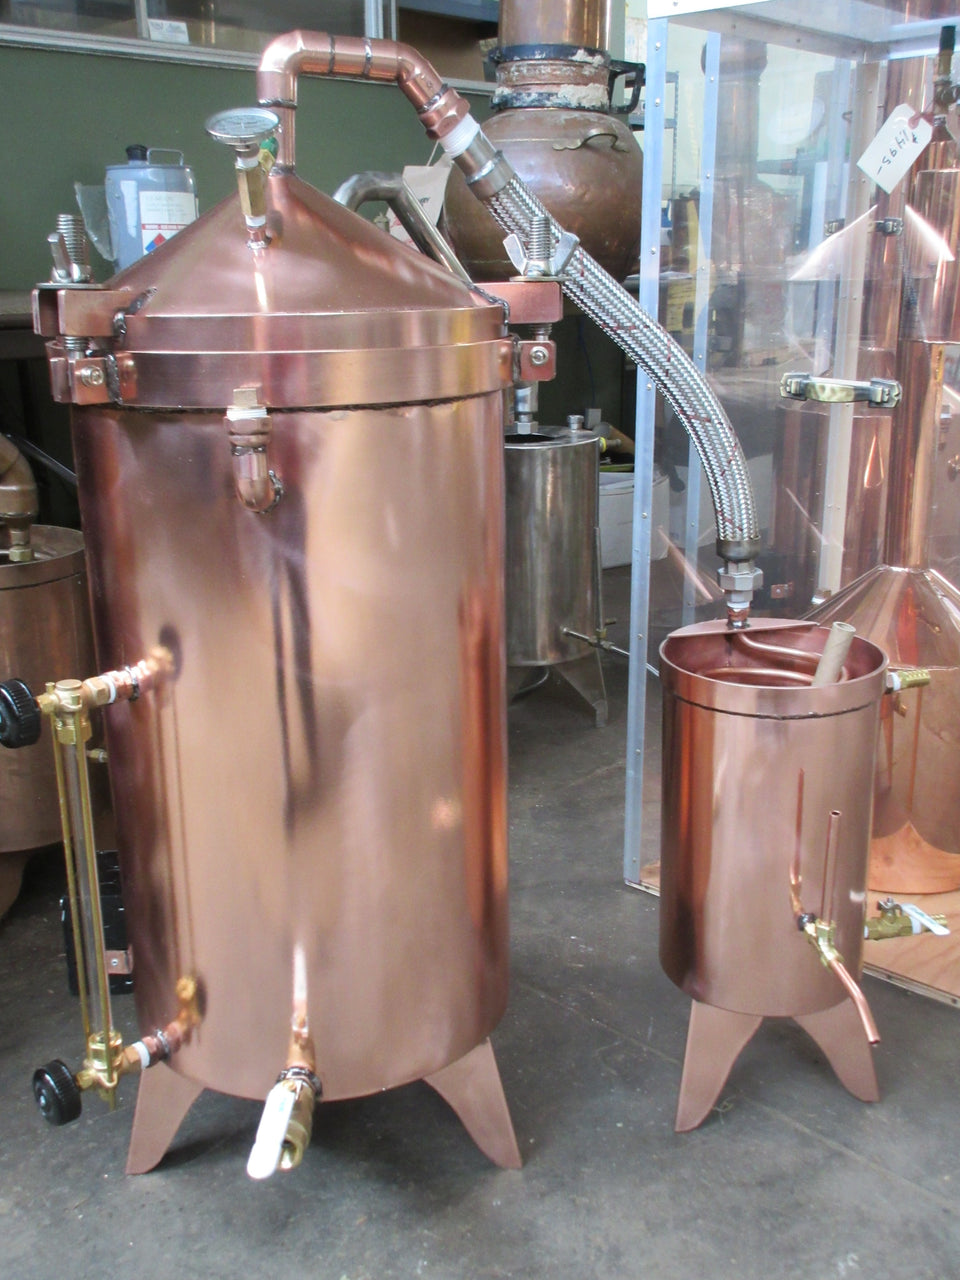 15 Gallon Copper Distiller With Essencier#distillation #copper #alembic #distiller #essentialoil #hydrosol